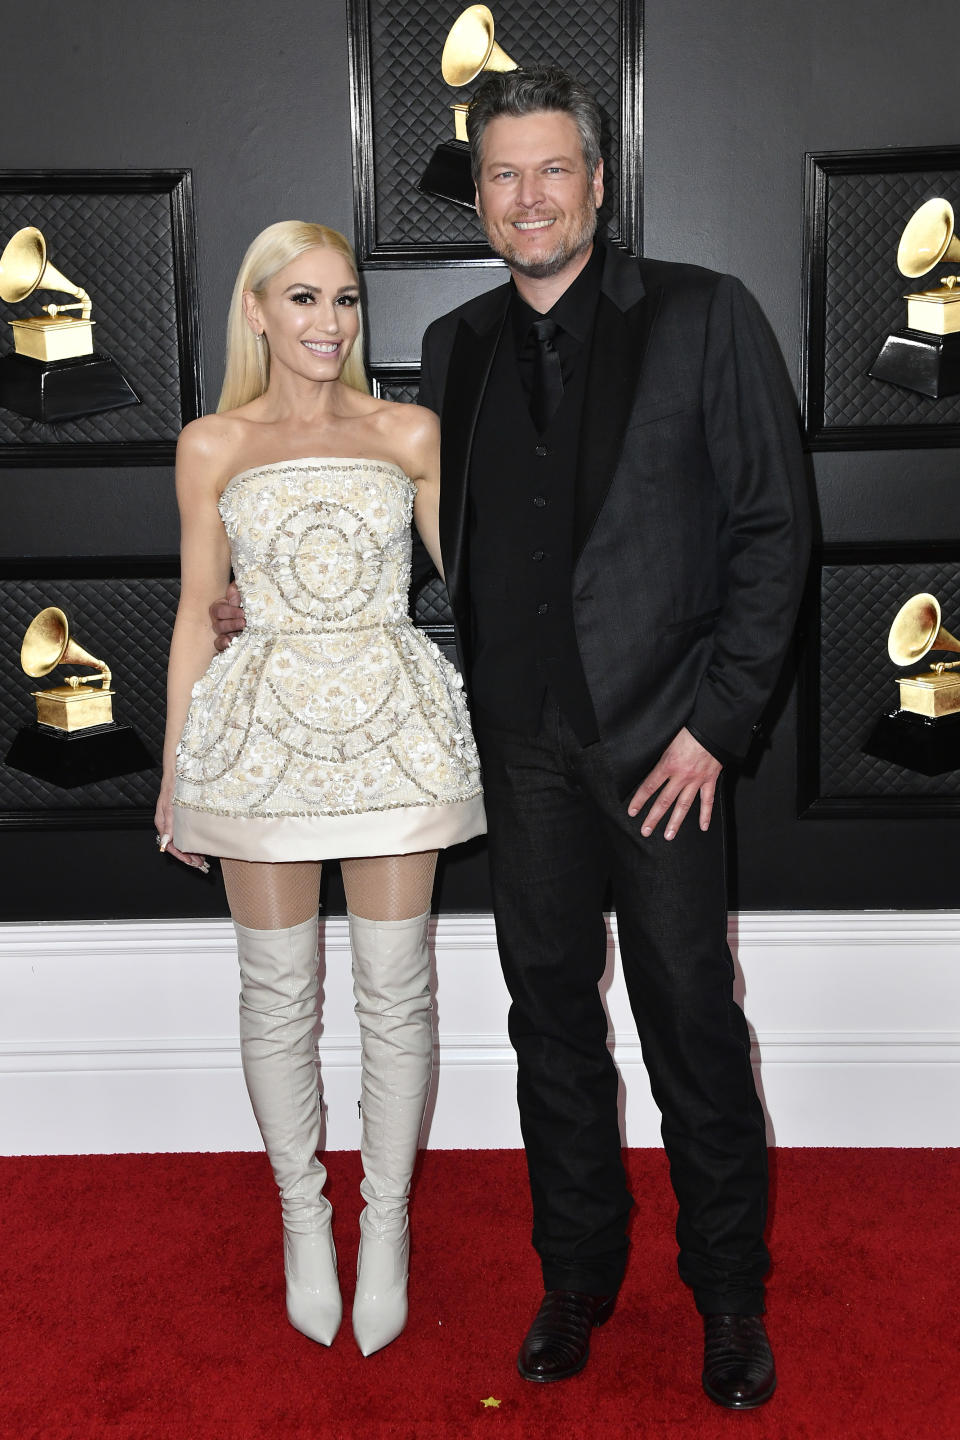 """The """"Just A Girl"""" singer arrived in a custom ensemble by Dolce & Gabbana alongside boyfriend Blake Shelton. Shelton earned his ninth Grammy nomination for Best Country Solo Performance, and took the stage with Stefani to perform their duet, """"Nobody But You."""""""